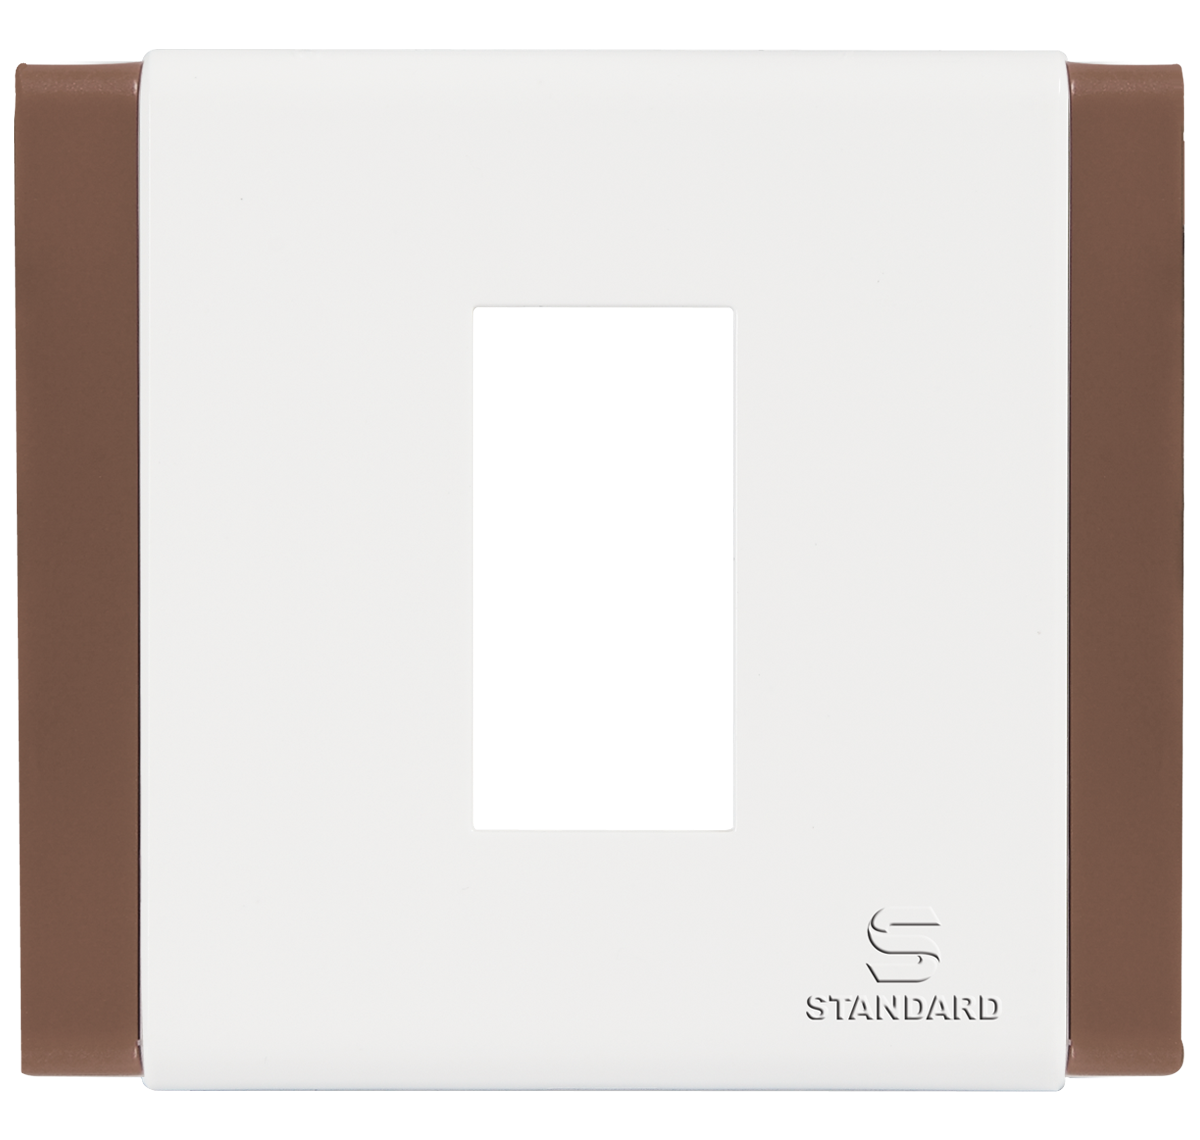 Standard - 1-m-caramel-brown-cover-plate